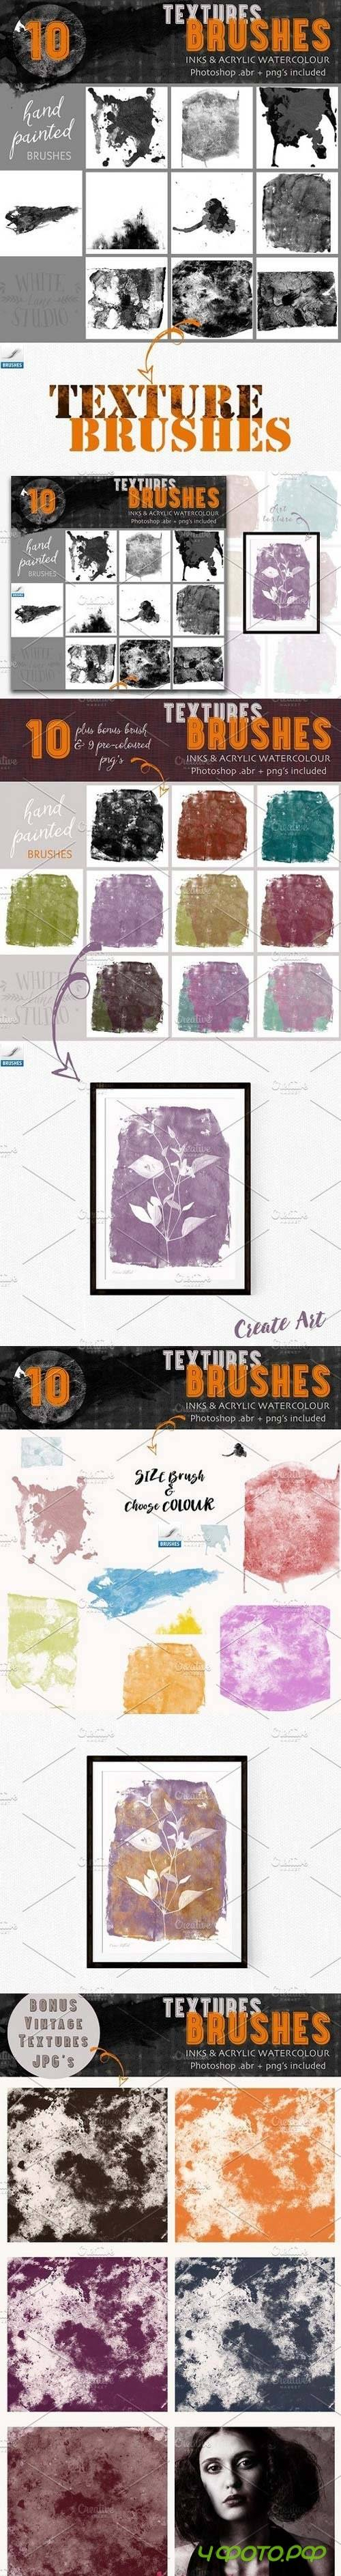 Textures Brushes- Inks & Acrylics 1596098